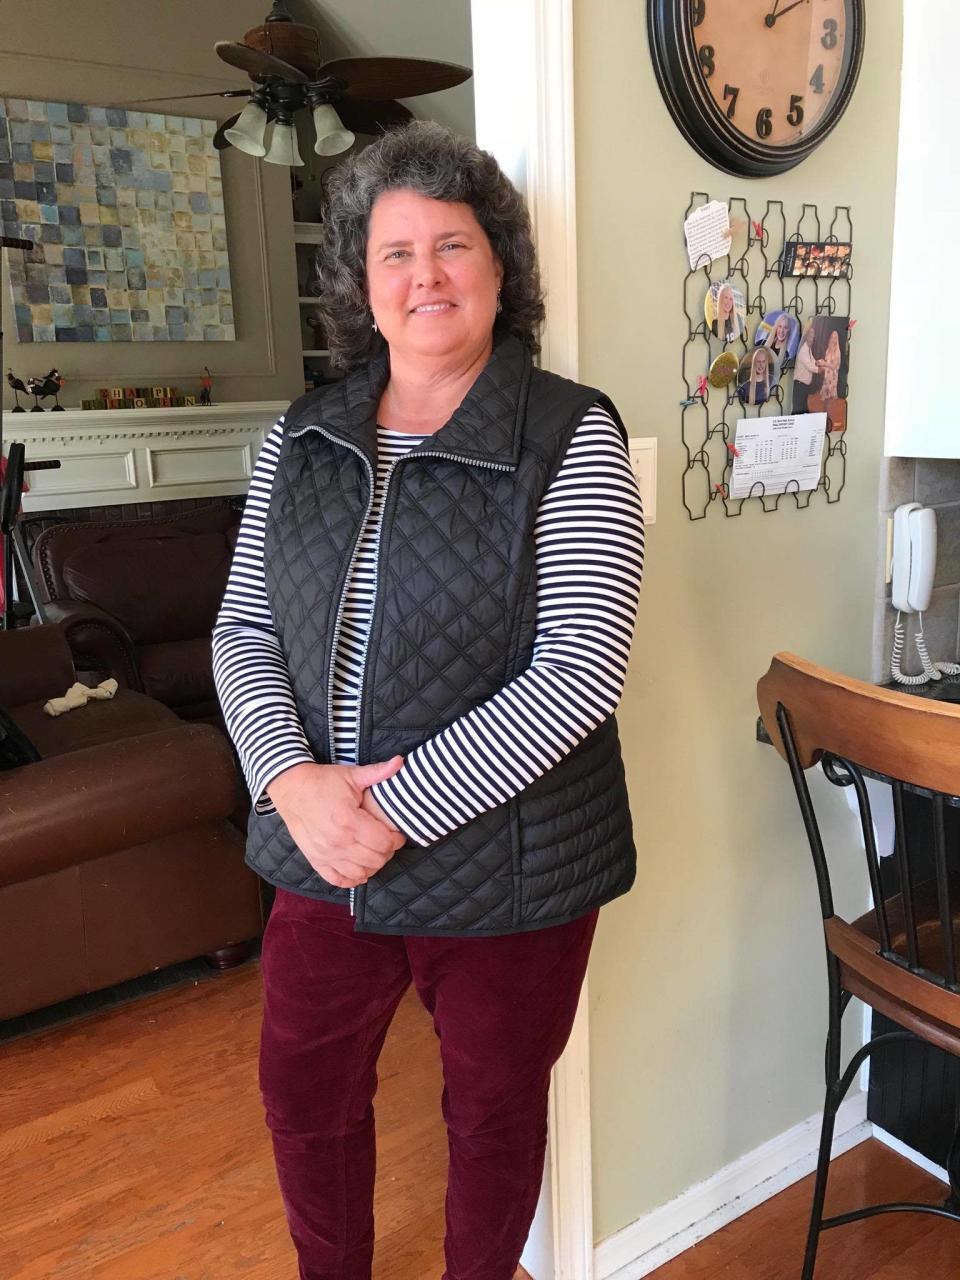 Marcy Bates Harris, a satisfied Stitch Fix user, thinks the service provides a better alternative to the shopping in her hometown without the hassle. Here, a head-to-toe Stitch Fix look on Bates Harris. (Photo: Marcy Bates Harris)